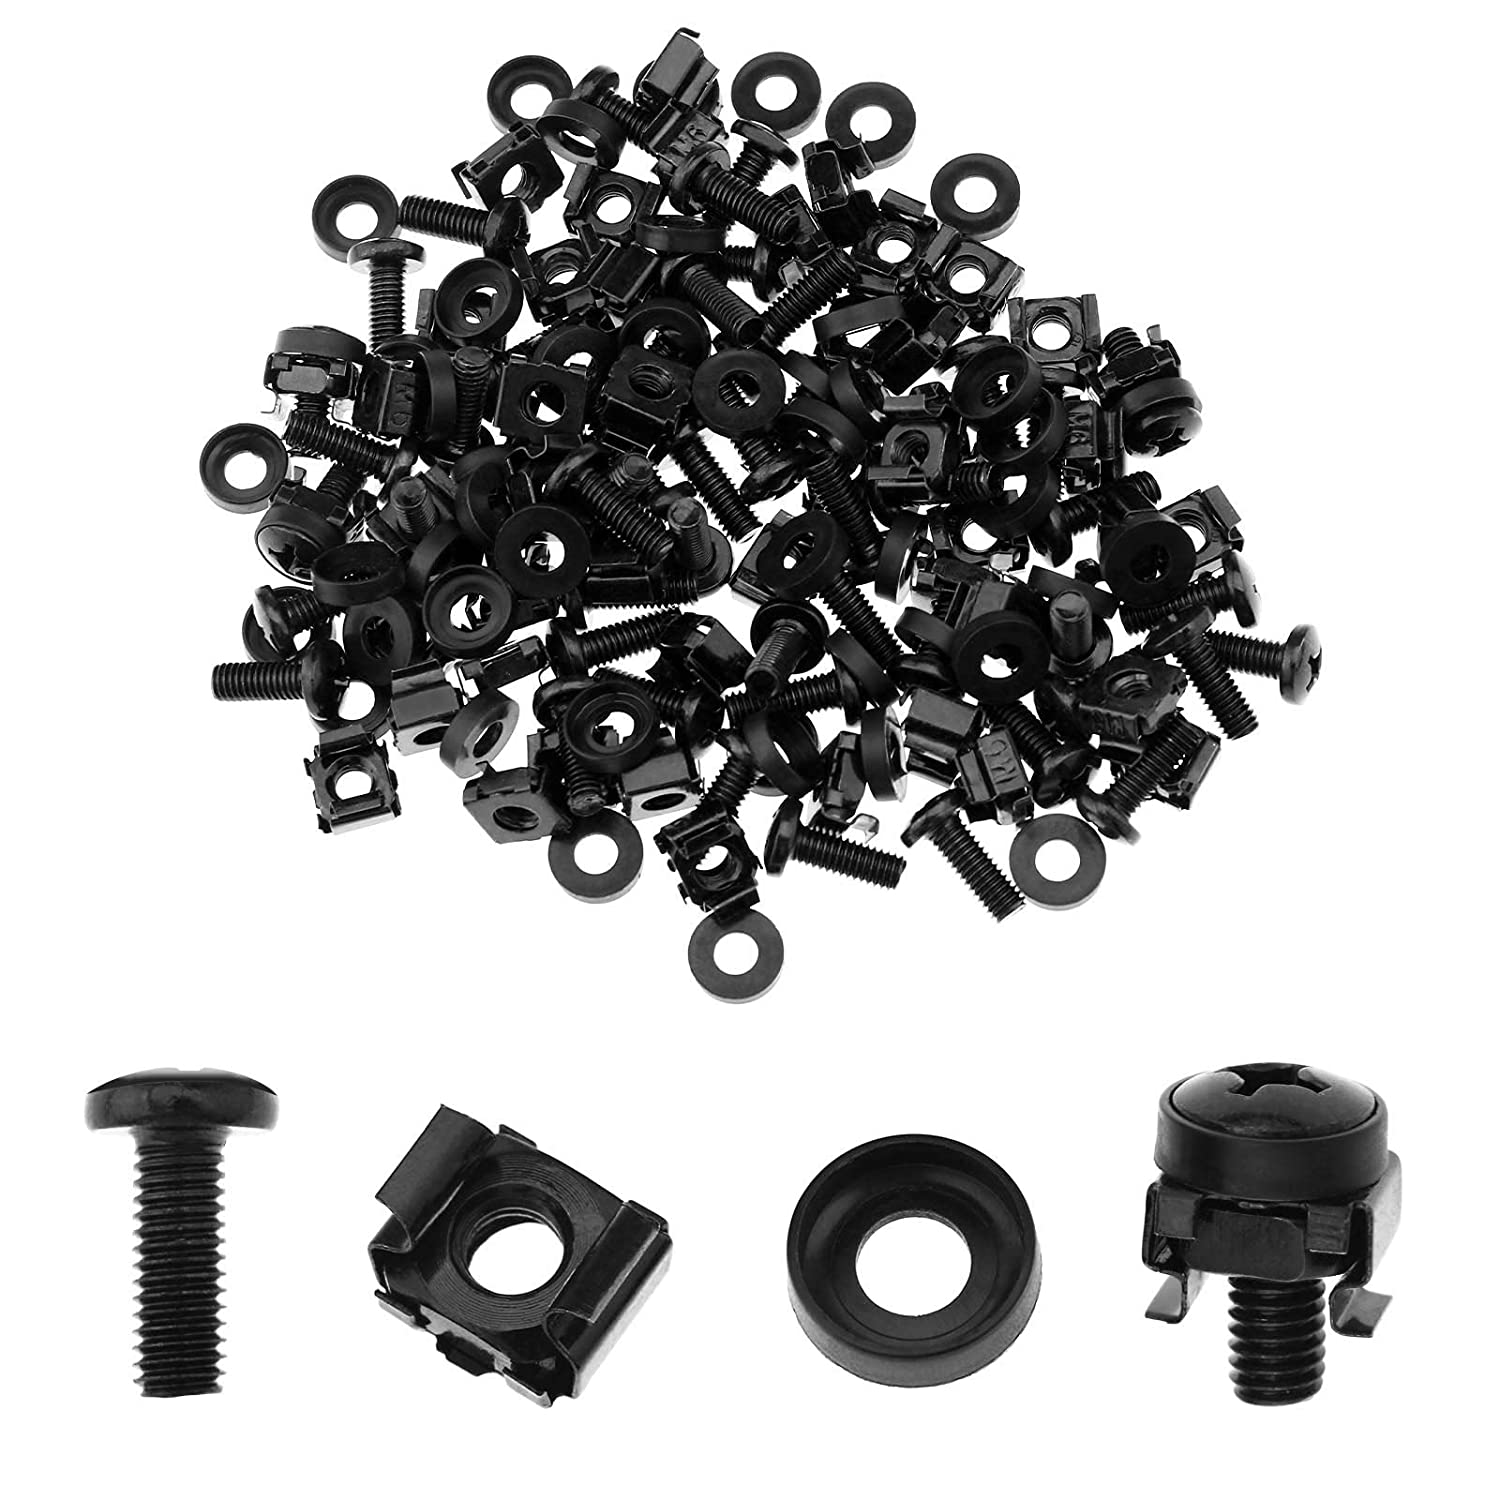 50 Pack M6 Cage Nuts and Bolts Screws Washers Network Cabinets Server Rack Mount Patch Panel Casing Housing